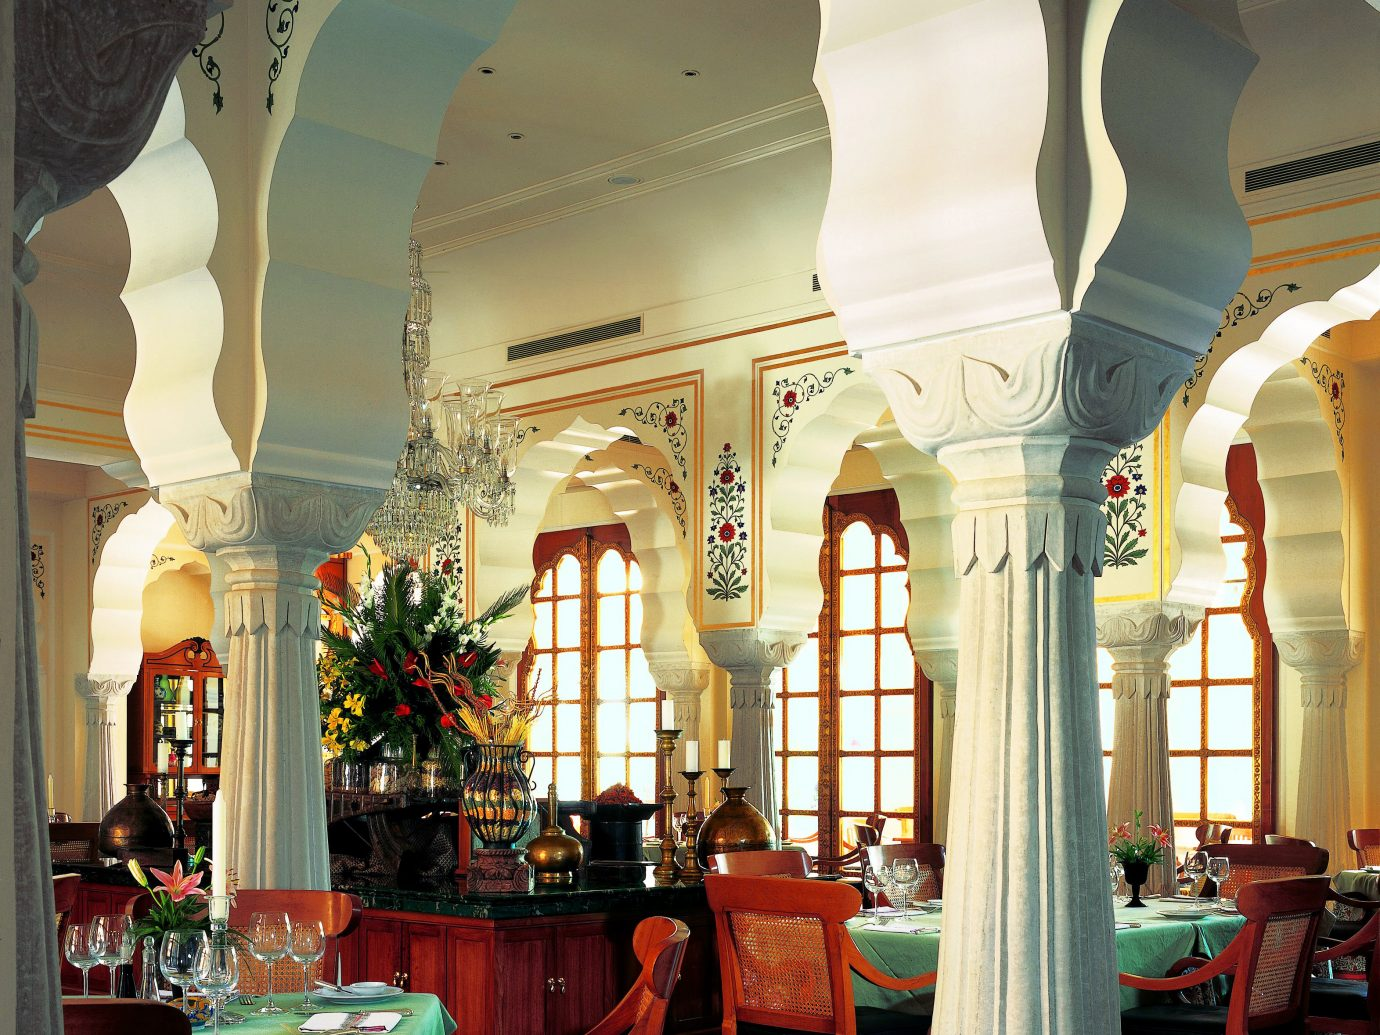 Dining Drink Eat Hotels Luxury Luxury Travel room indoor Lobby building Living Architecture interior design restaurant estate retail shopping mall furniture palace arch decorated several colonnade